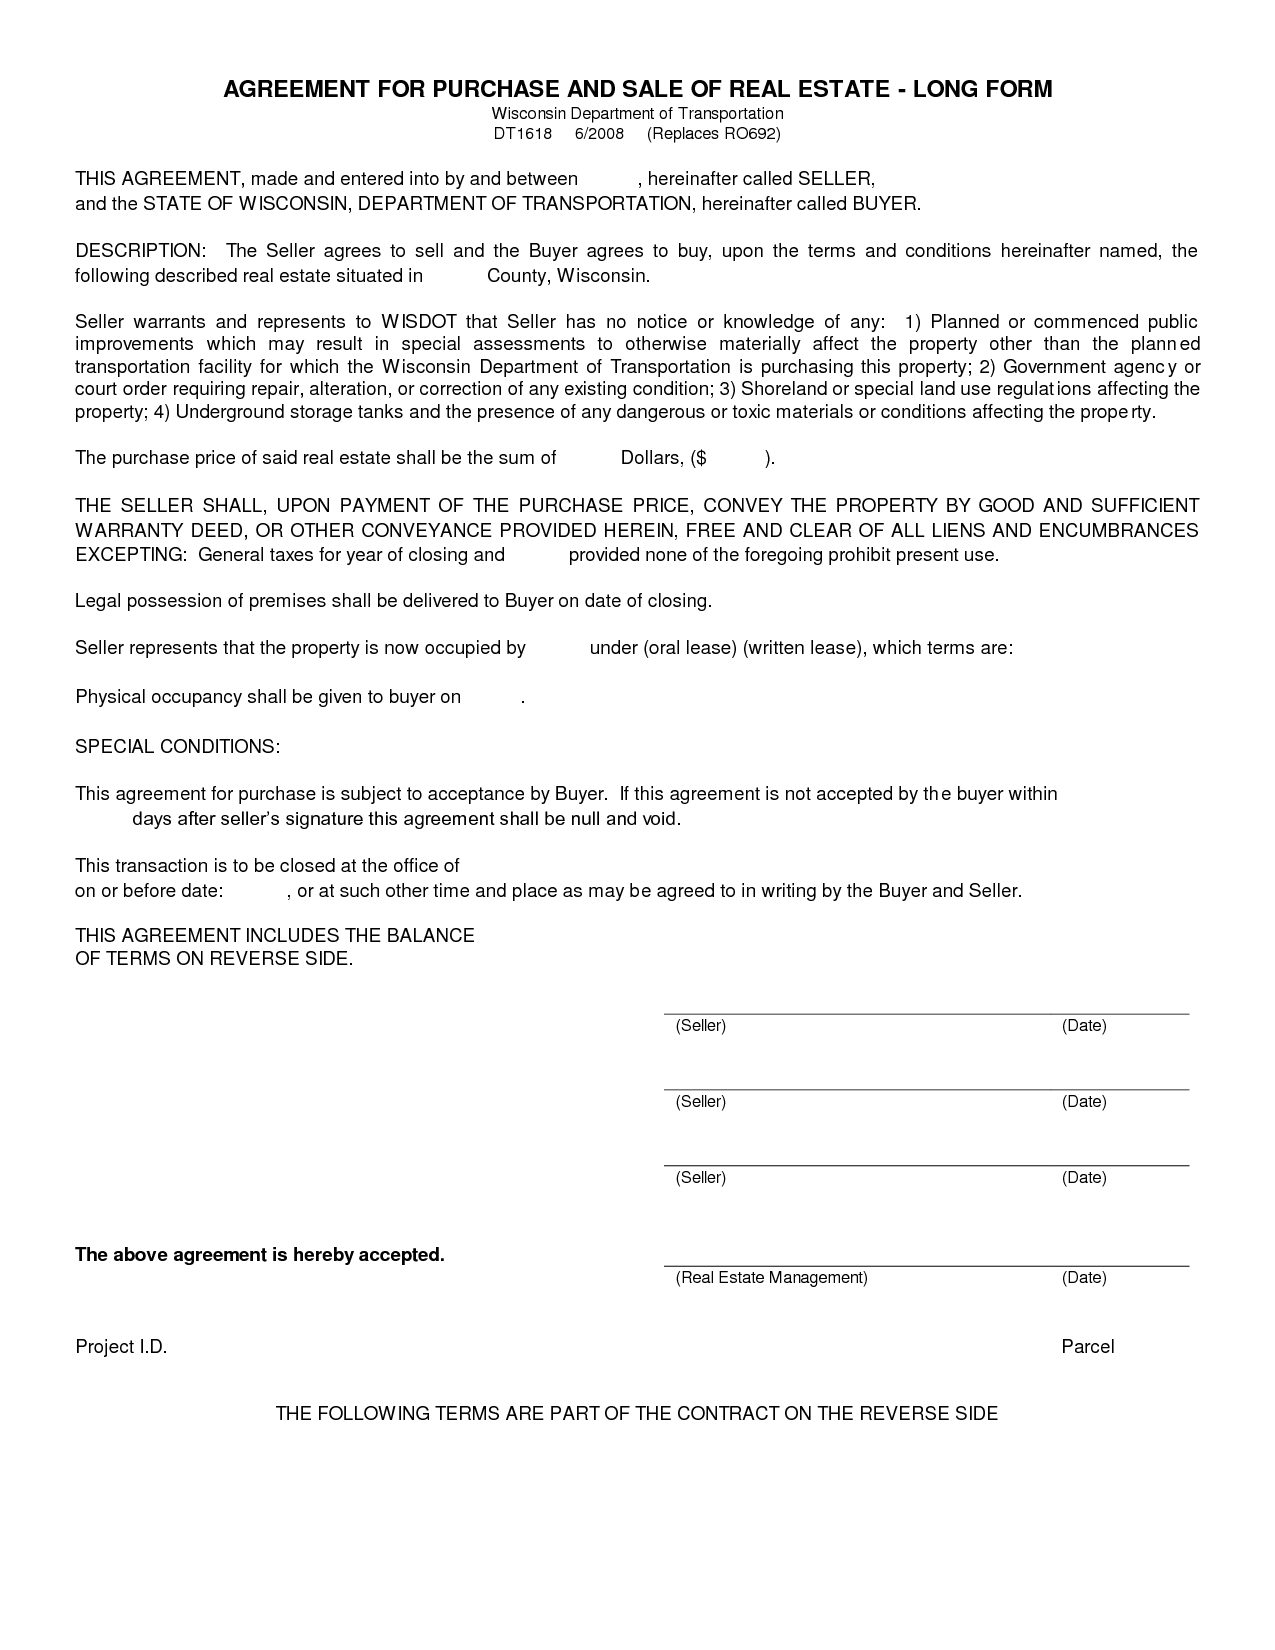 Free Blank Purchase Agreement Form Images To Letter Oft Real